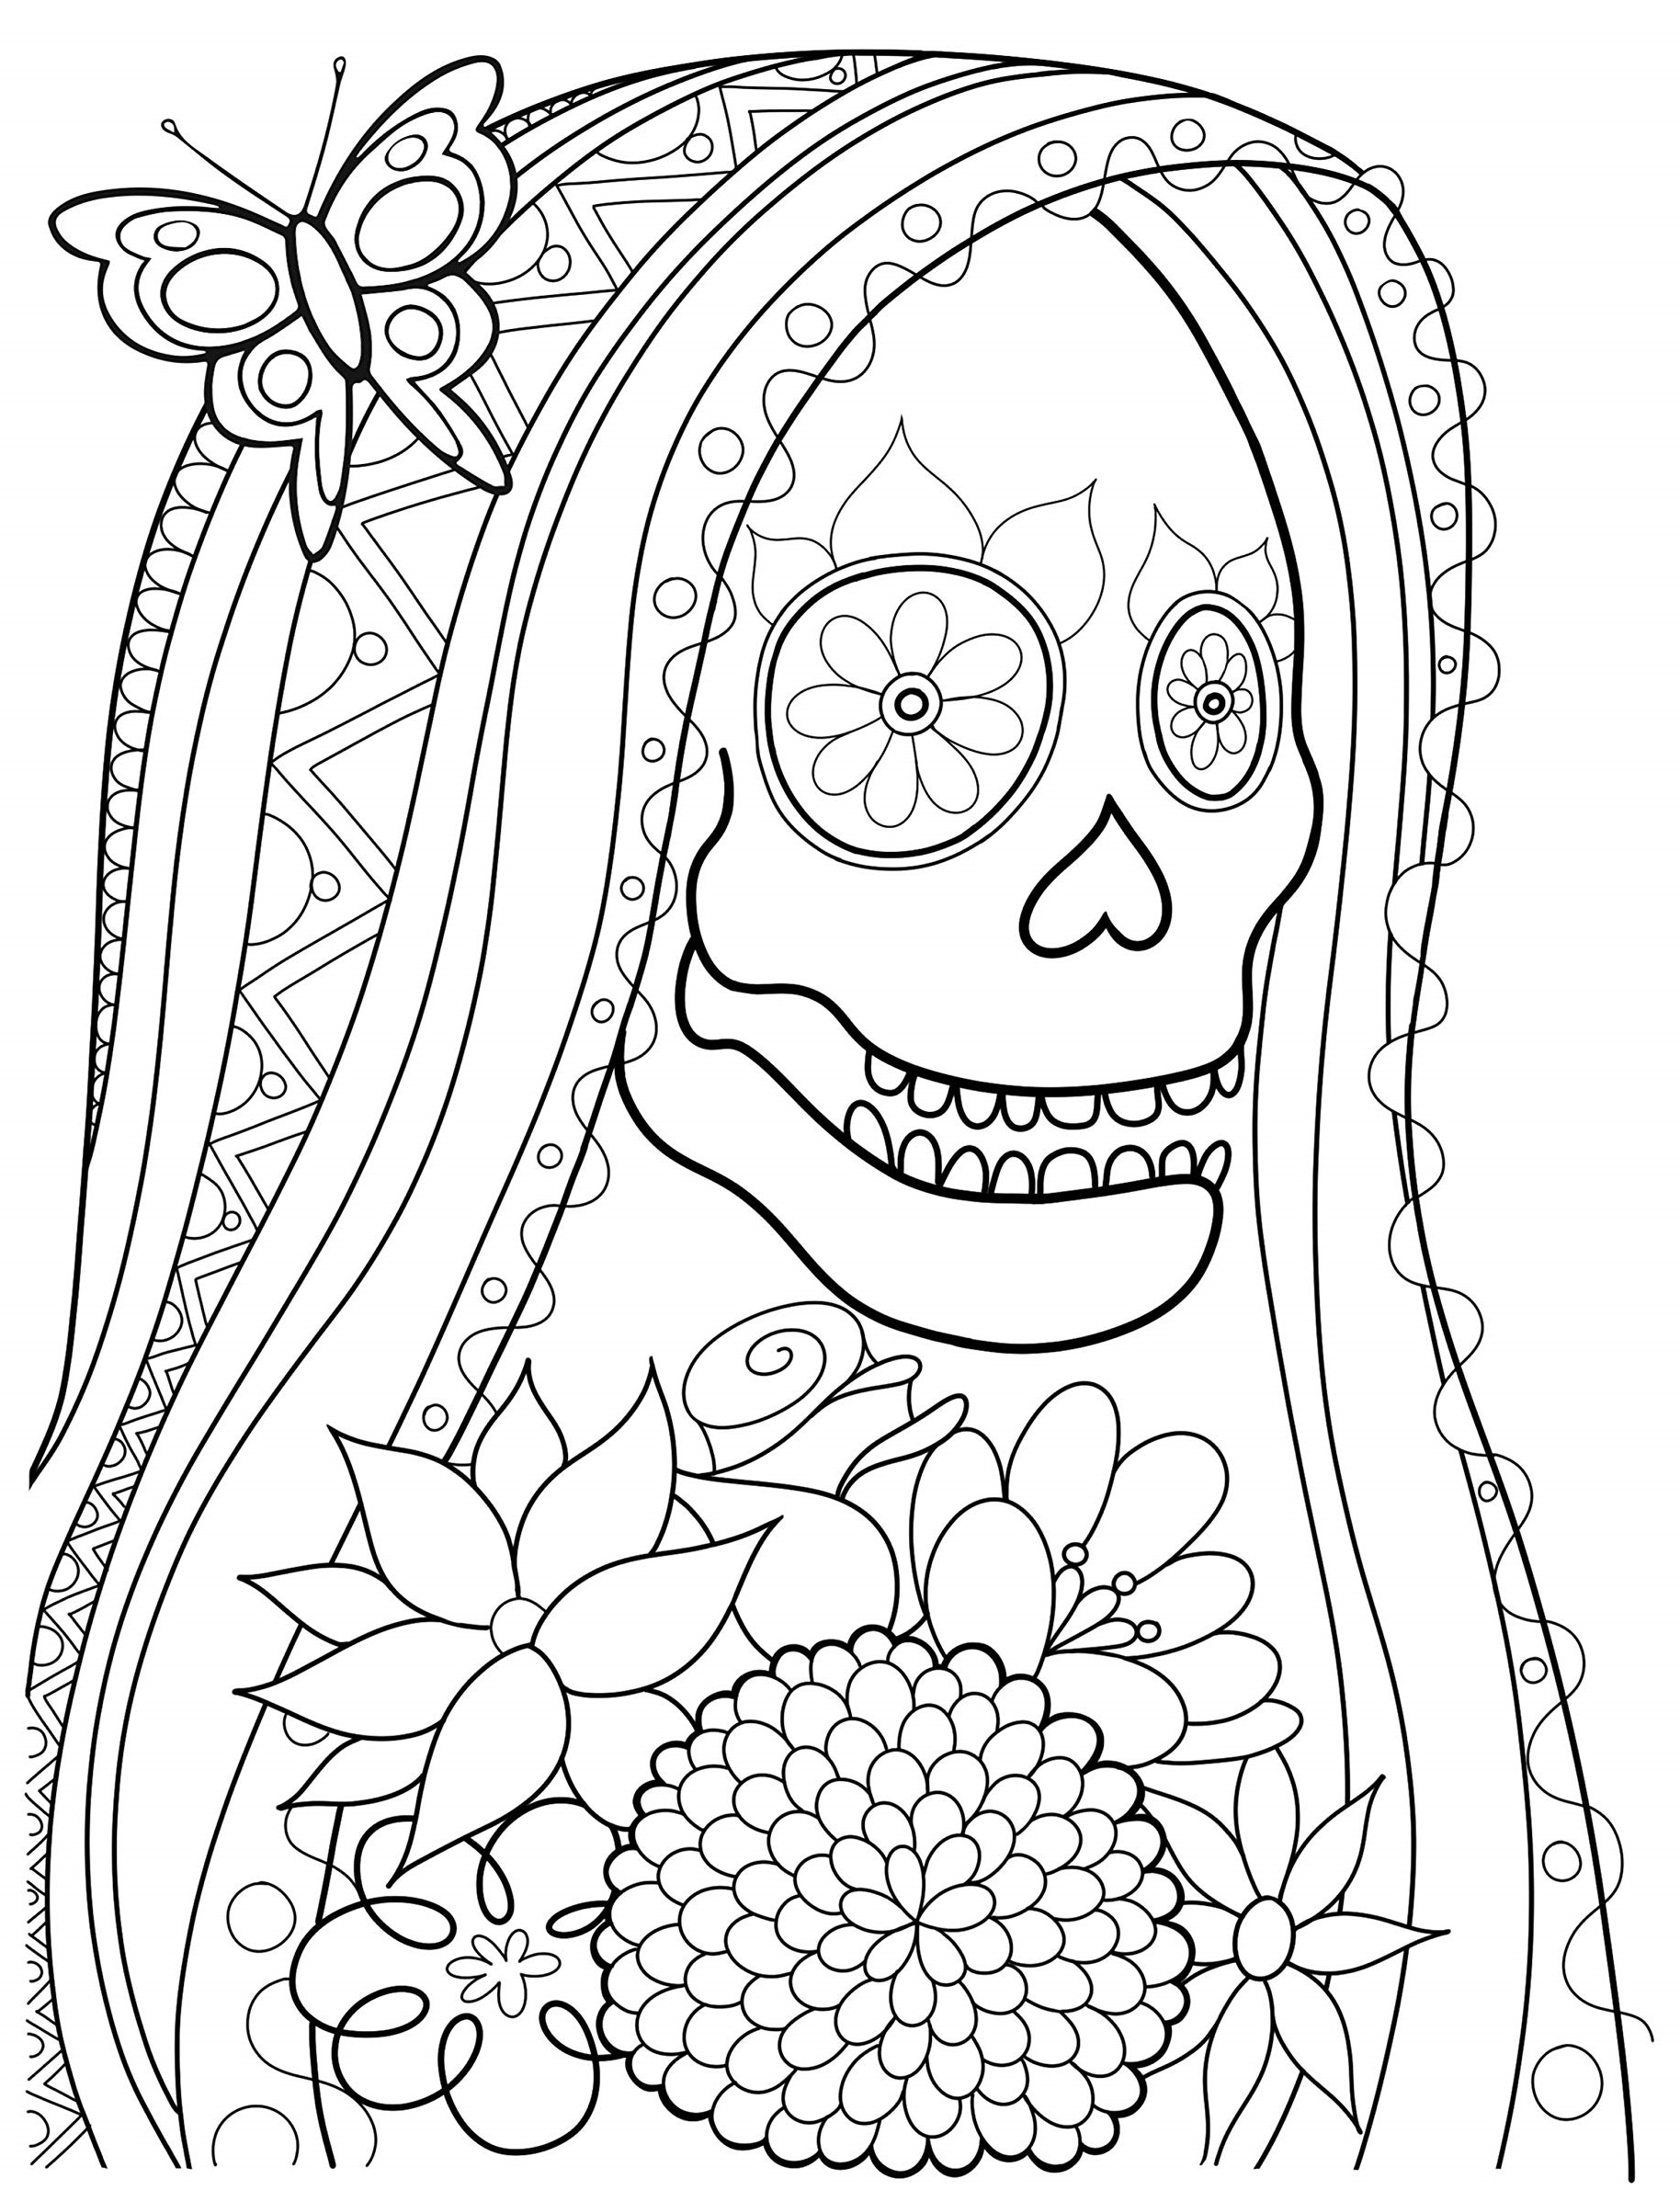 Corpse bride - Coloring pages for you